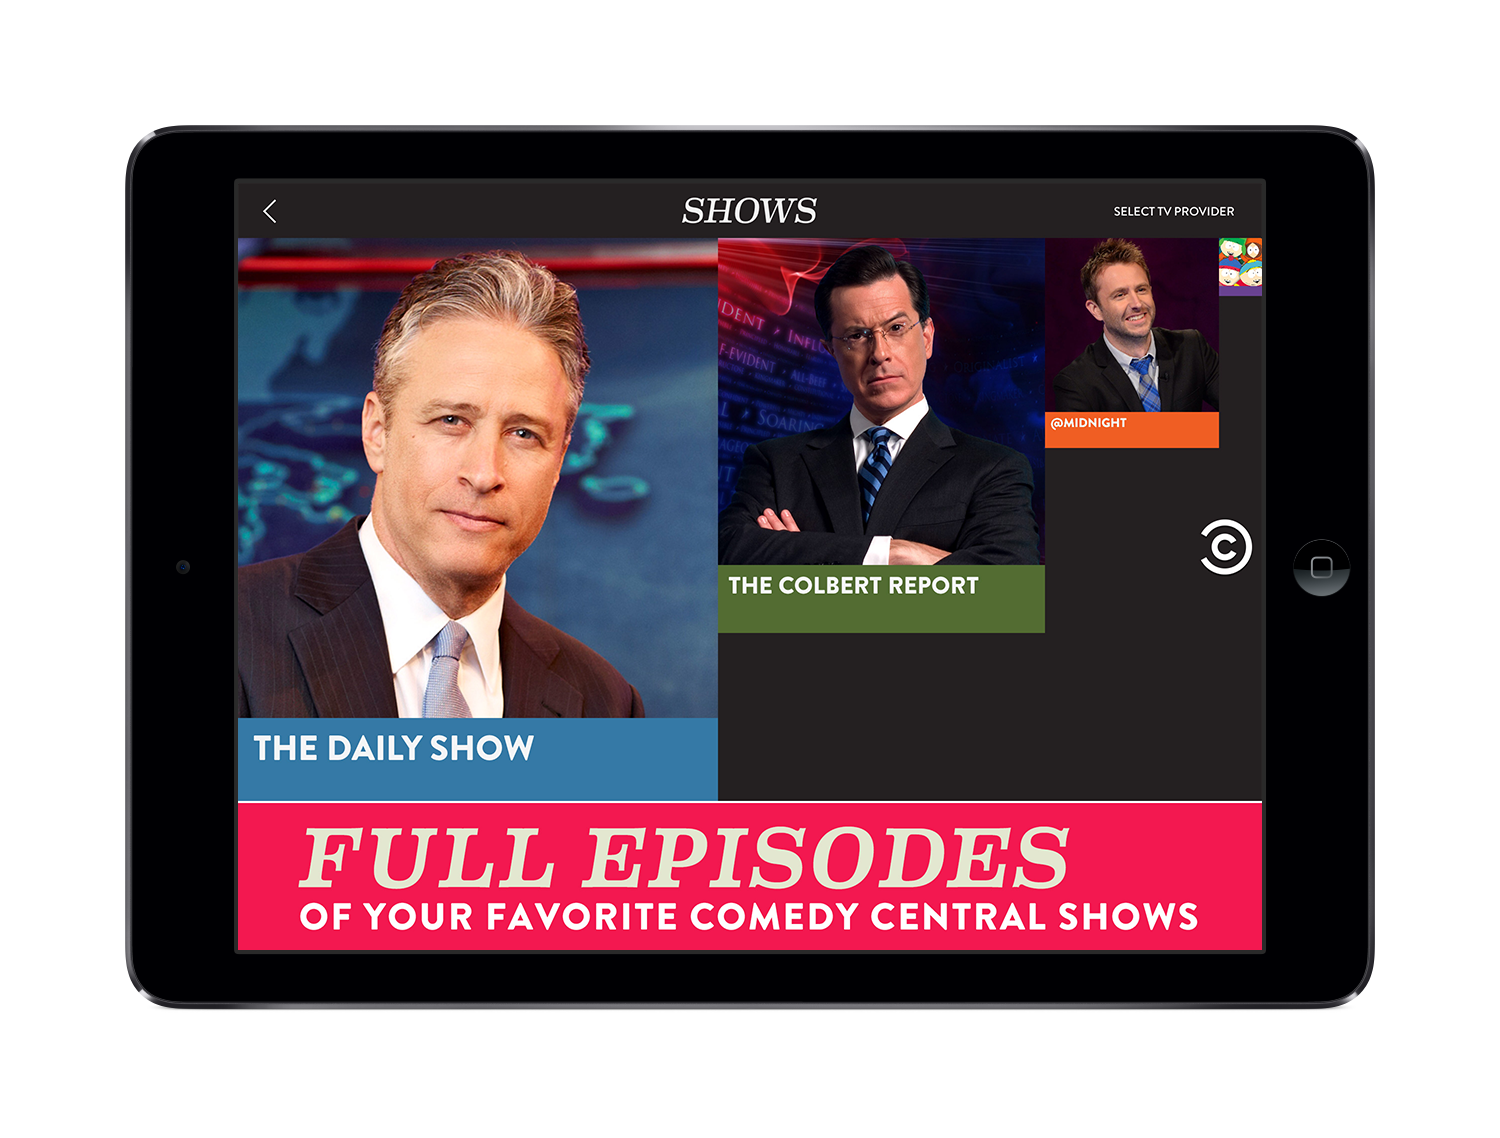 Comedy Central's app launches on April Fool's Day (appropriately) with more than 200 full-episode programs